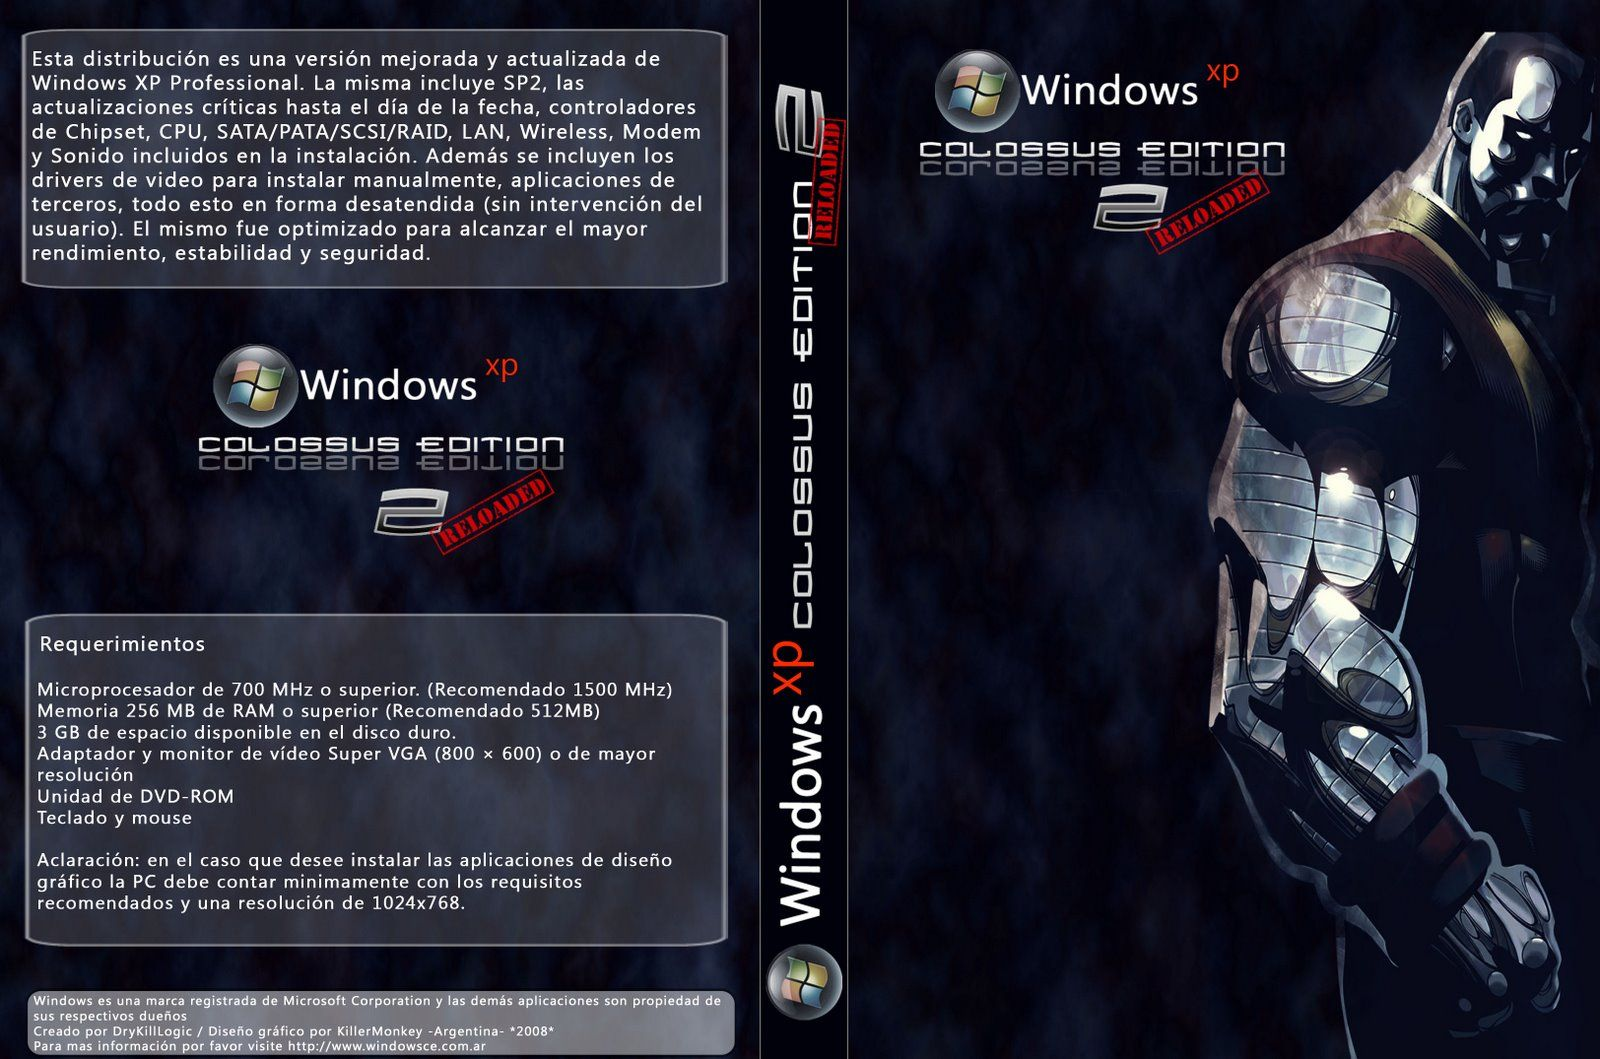 Windows XP Colossus Edition V2.0 Reloaded [Español] [Booteable] [ULD]